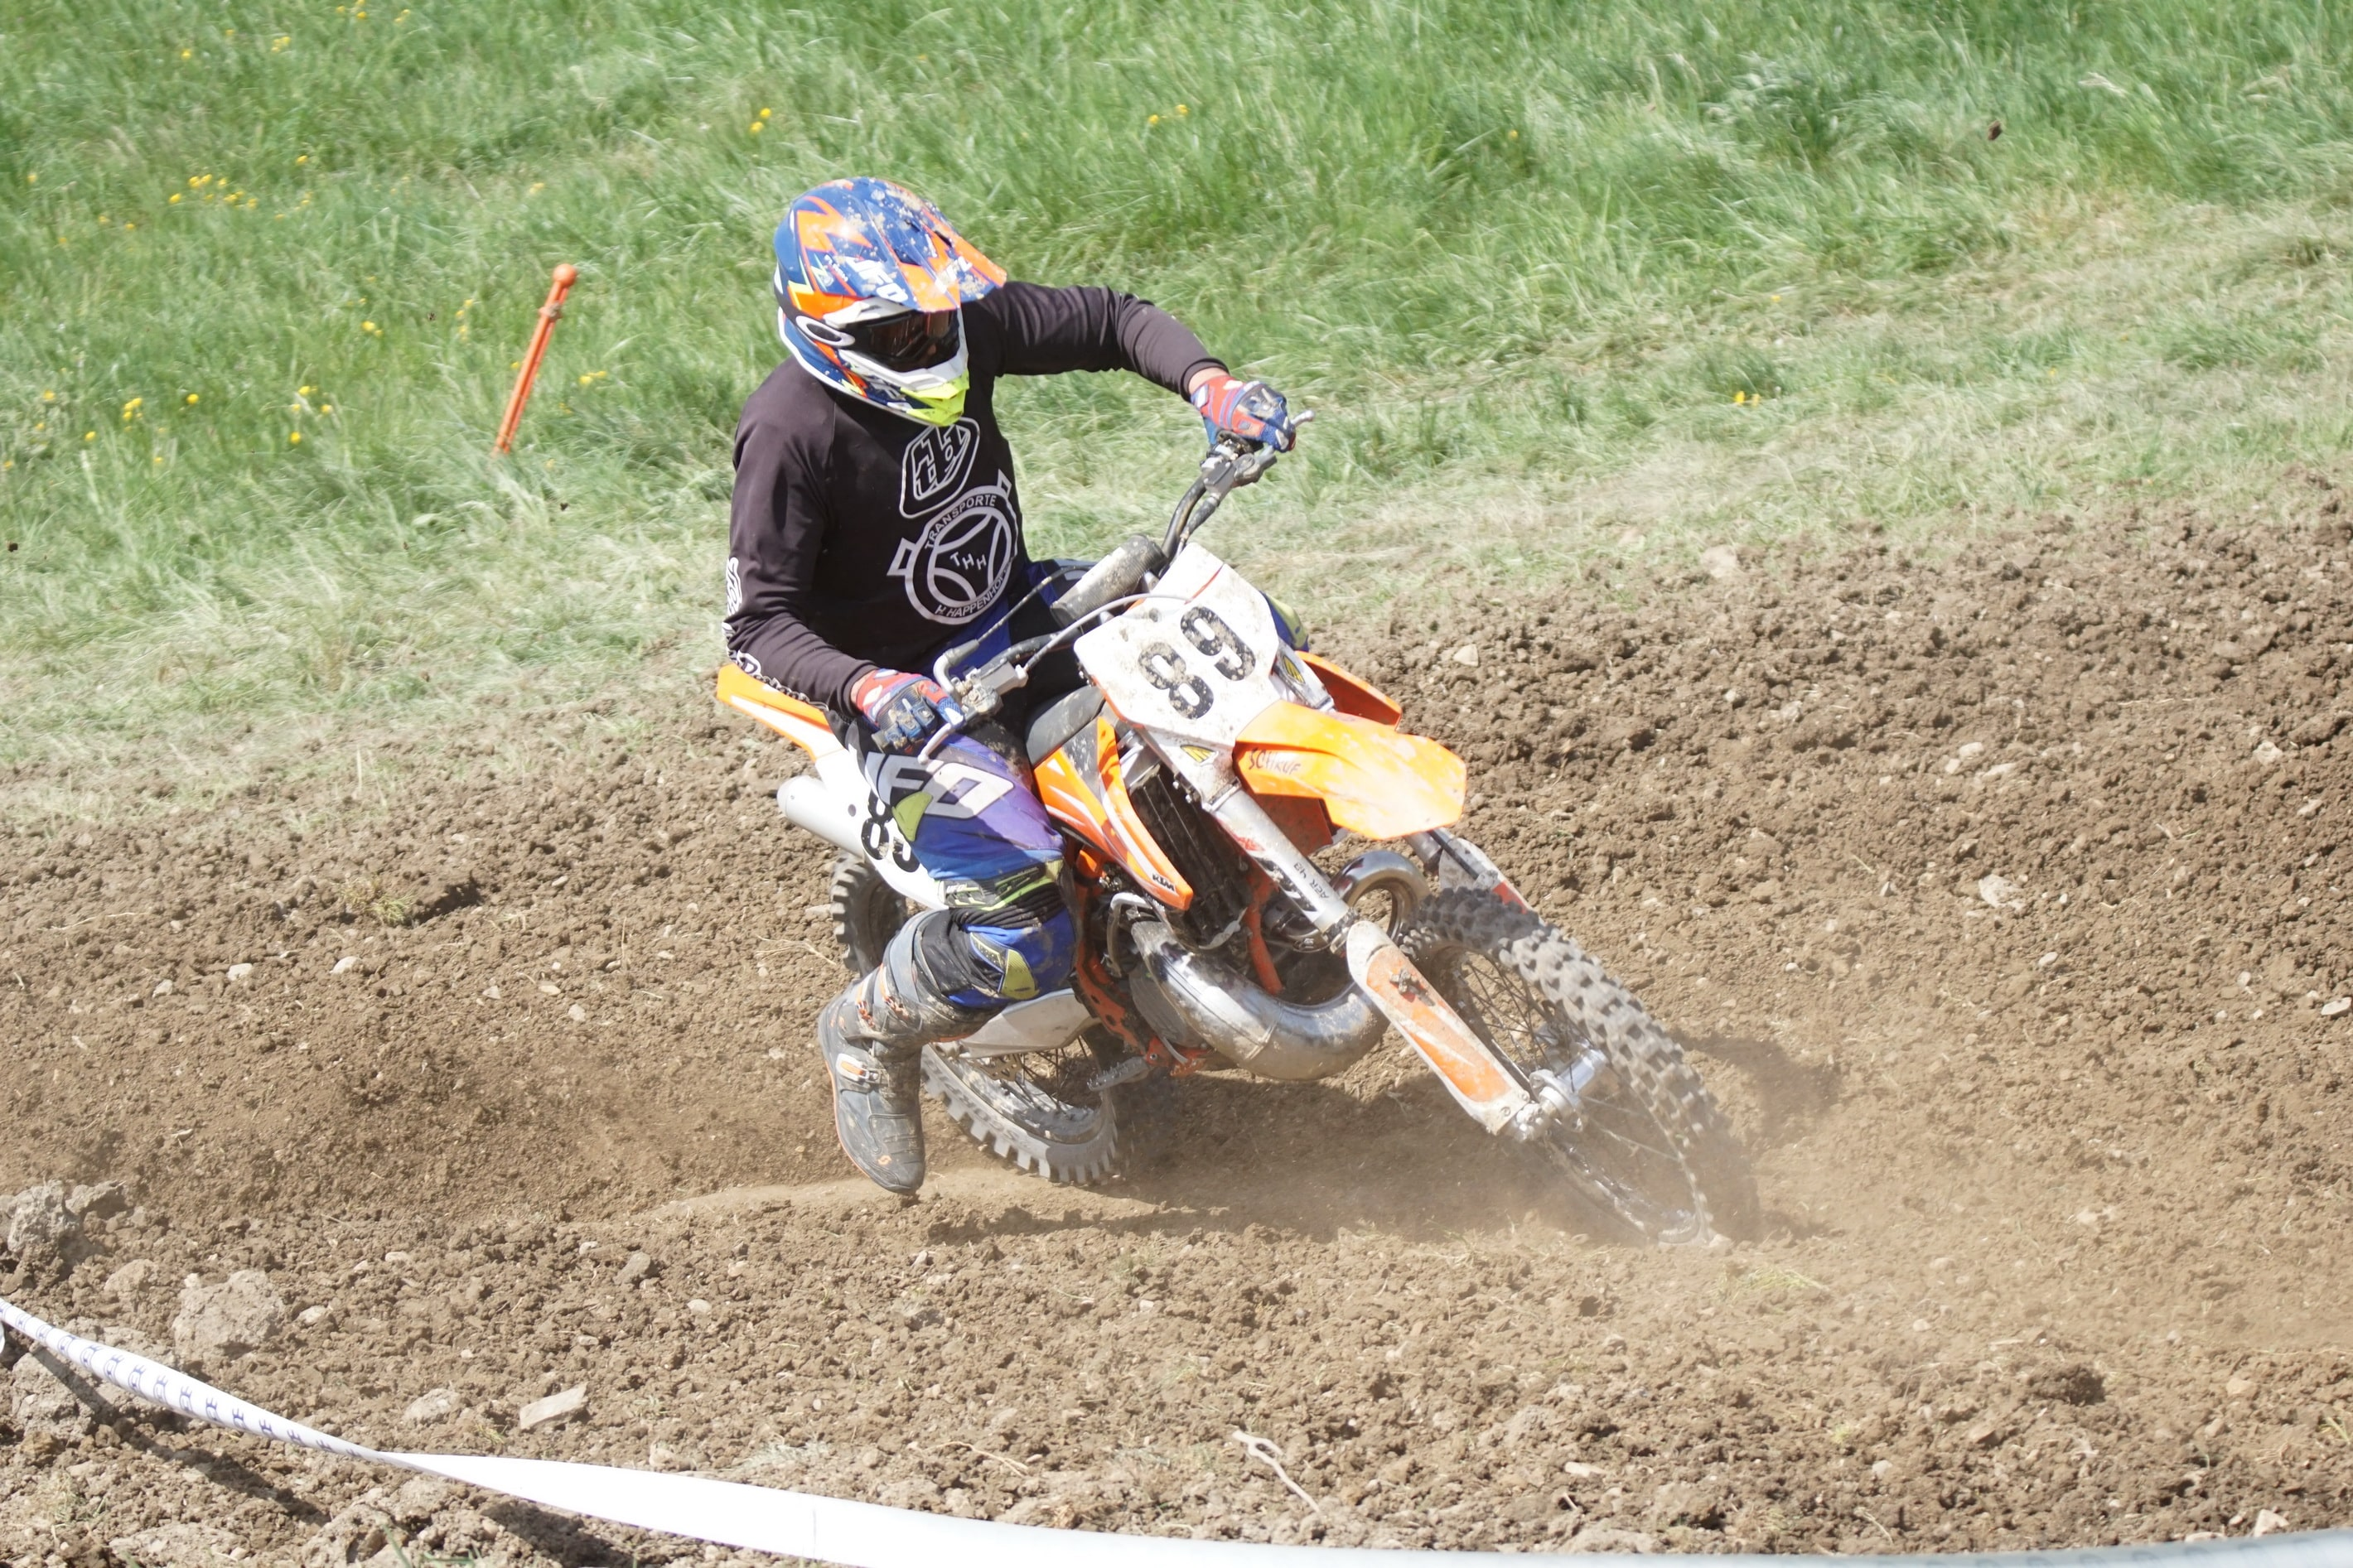 DSC 610_Moto Cross Sittendorf Teil1 am 29.04.2018